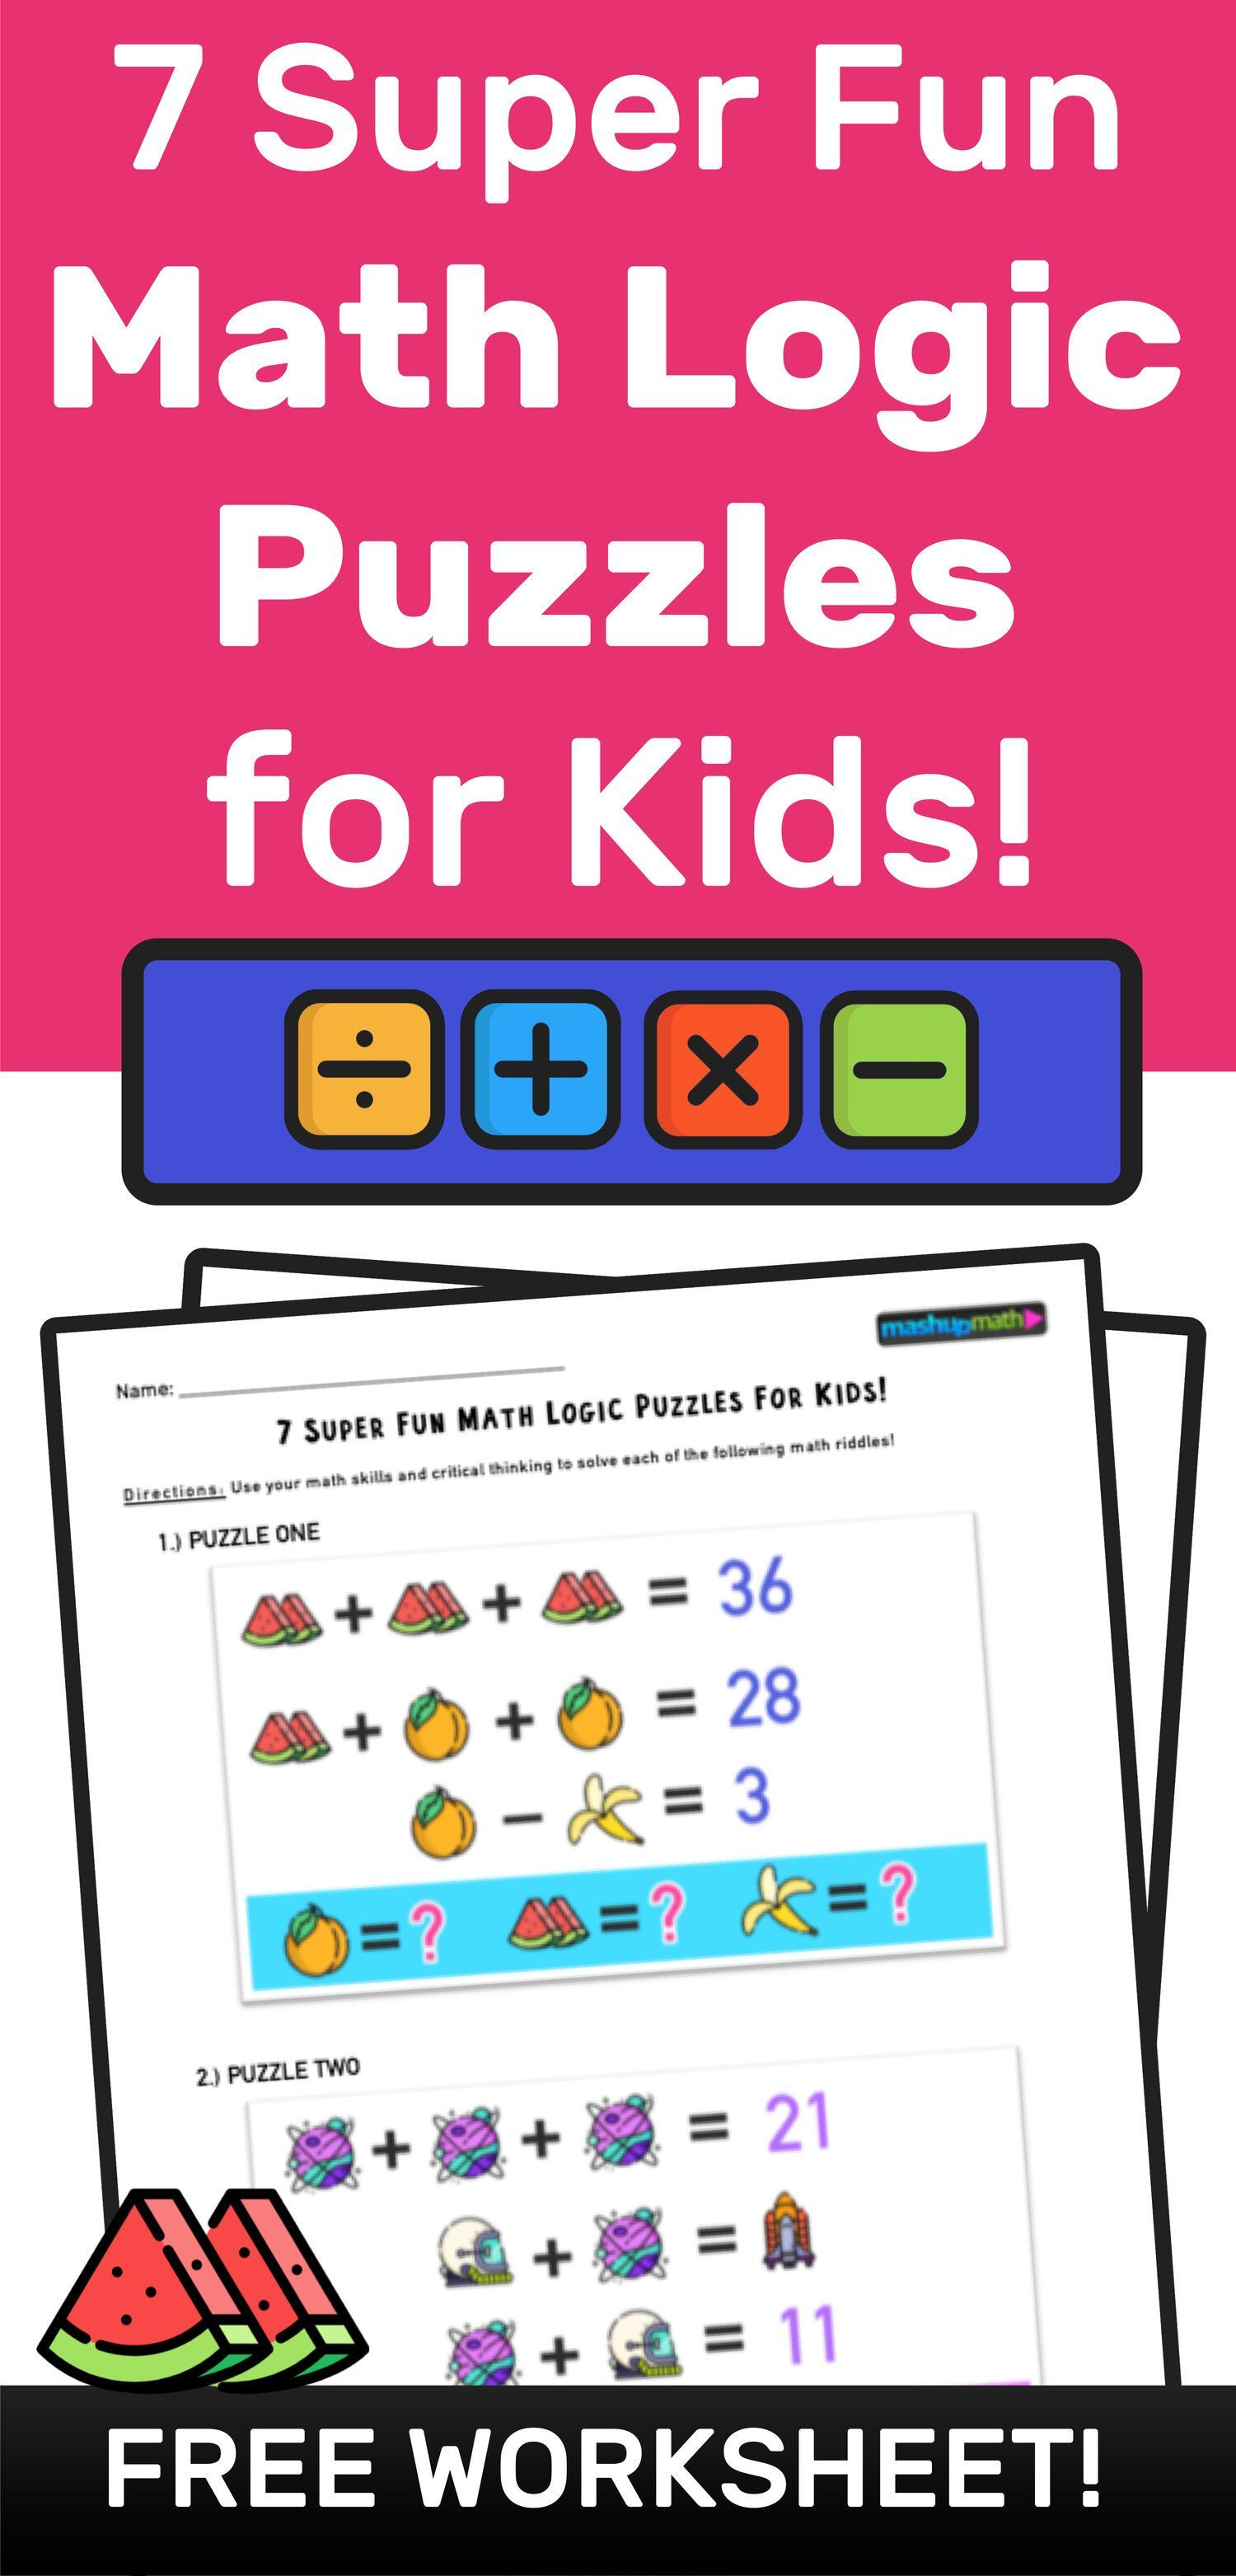 Are Your Kids Ready For These 7 Super Fun Math Logic